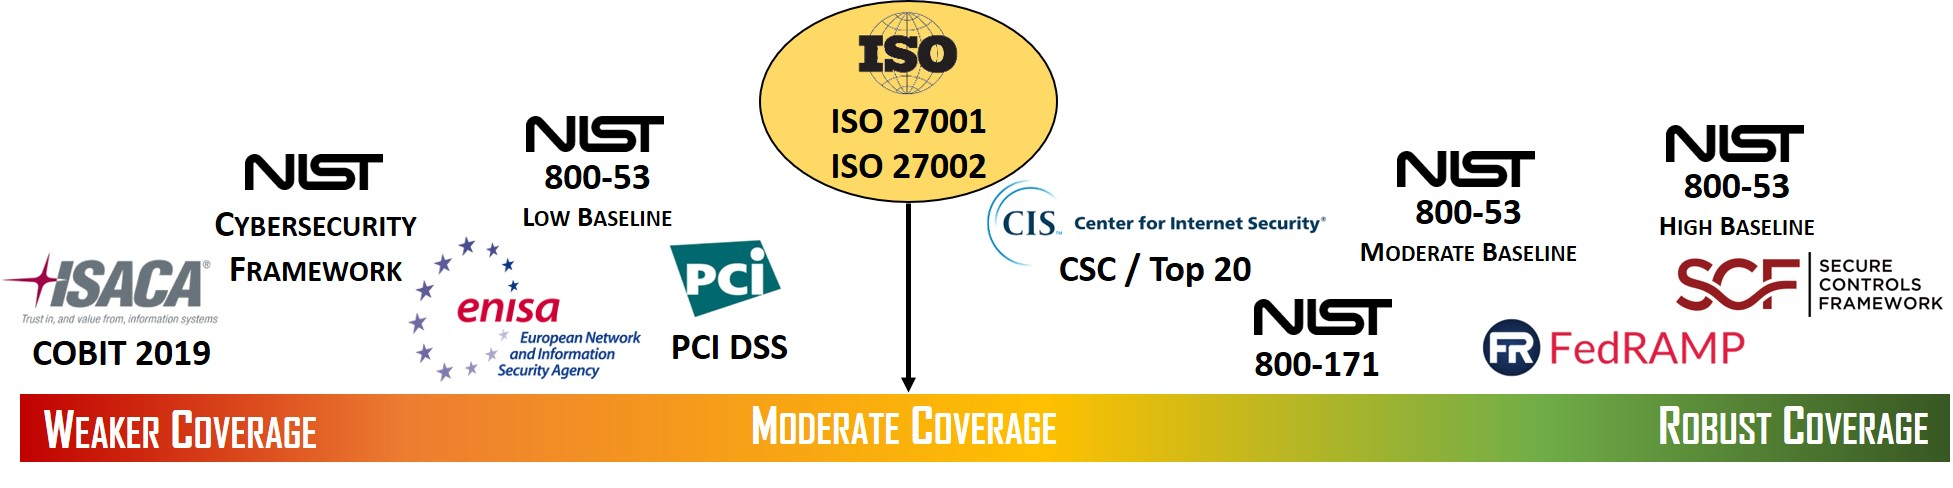 2021-iso-27001-27002-policies-standards-procedures.jpg